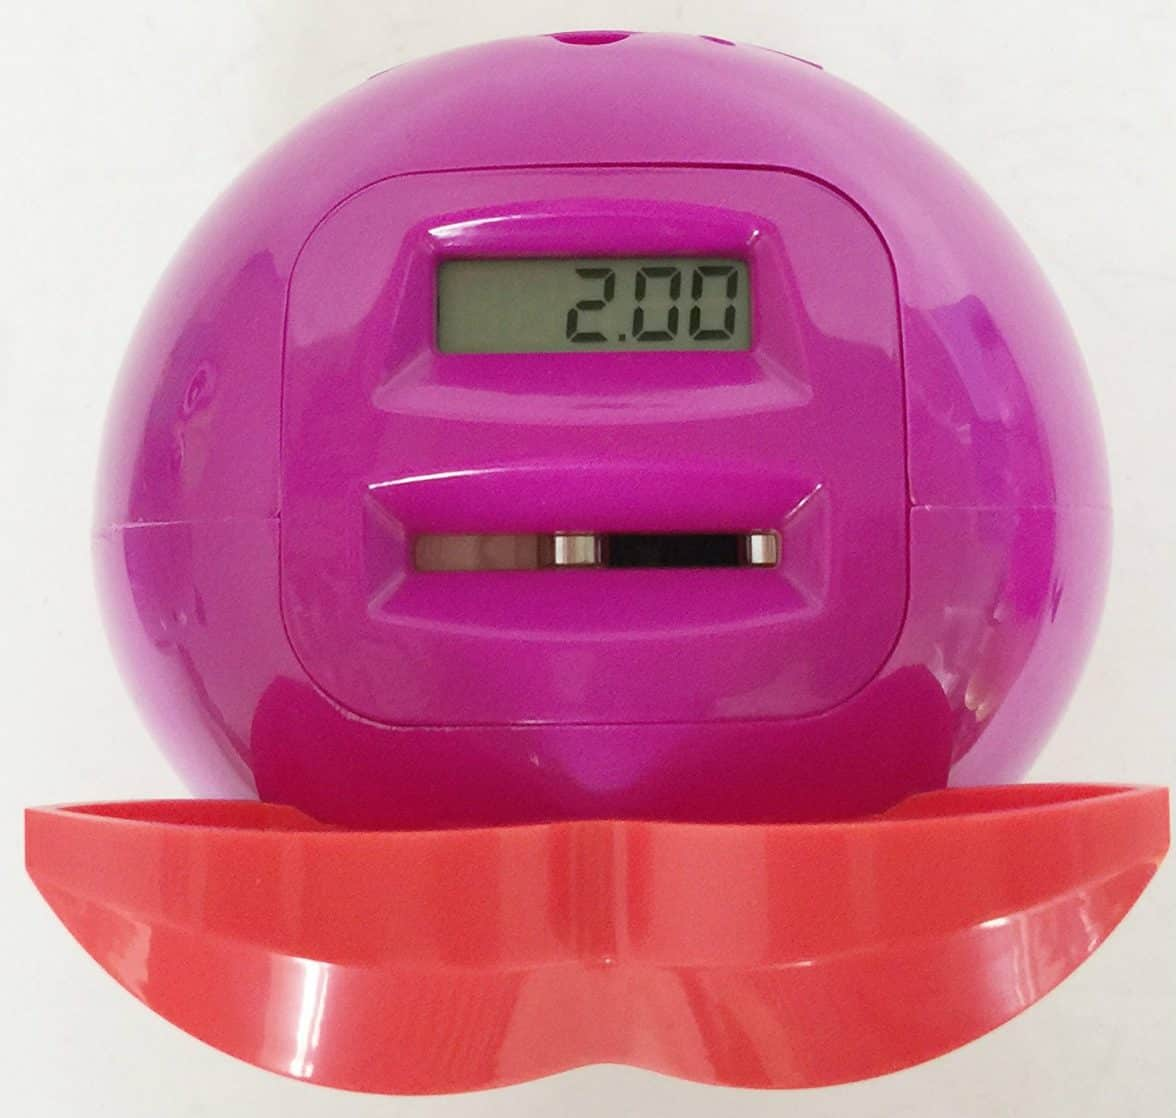 UK STERLING COIN SMART PIGGY BANK DIGITAL COIN BANK AUTOMATICAL COUNTING LCD SCREEN MONEY BOX JAR OWL SHAPE (PURPLE) by BUDABASE